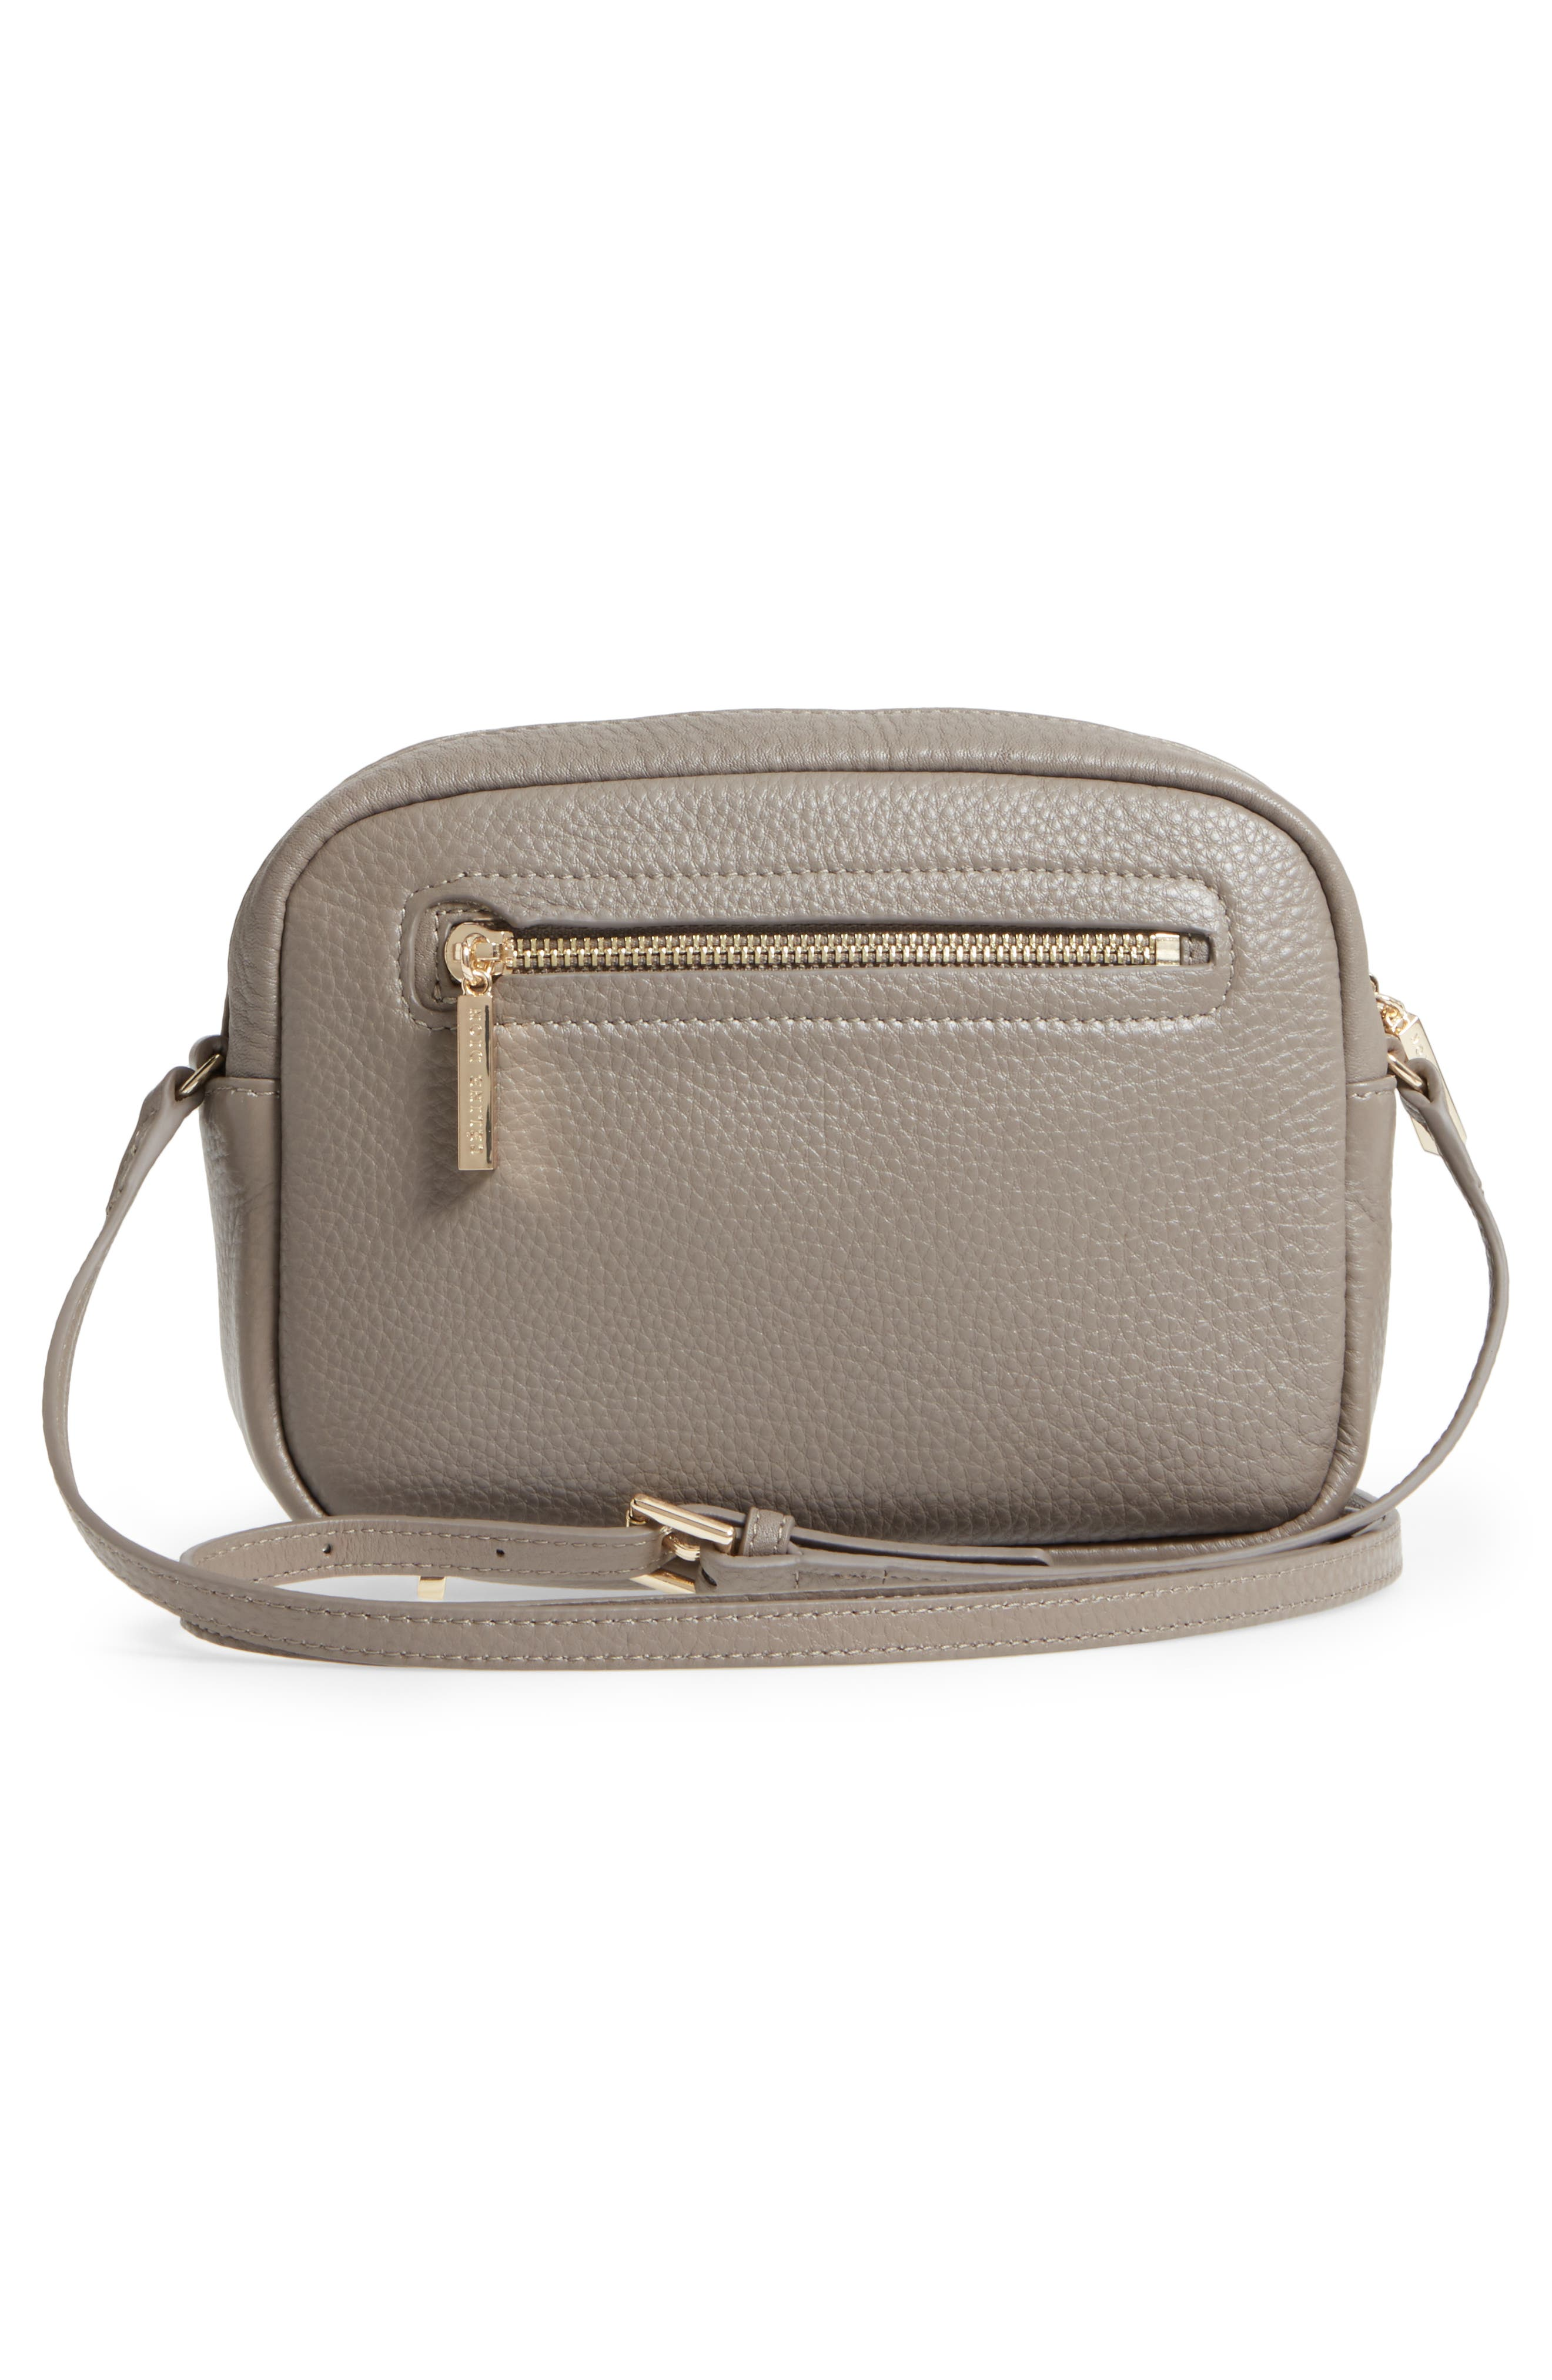 Céline Dion Adagio Leather Camera Crossbody Bag,                             Alternate thumbnail 3, color,                             Taupe